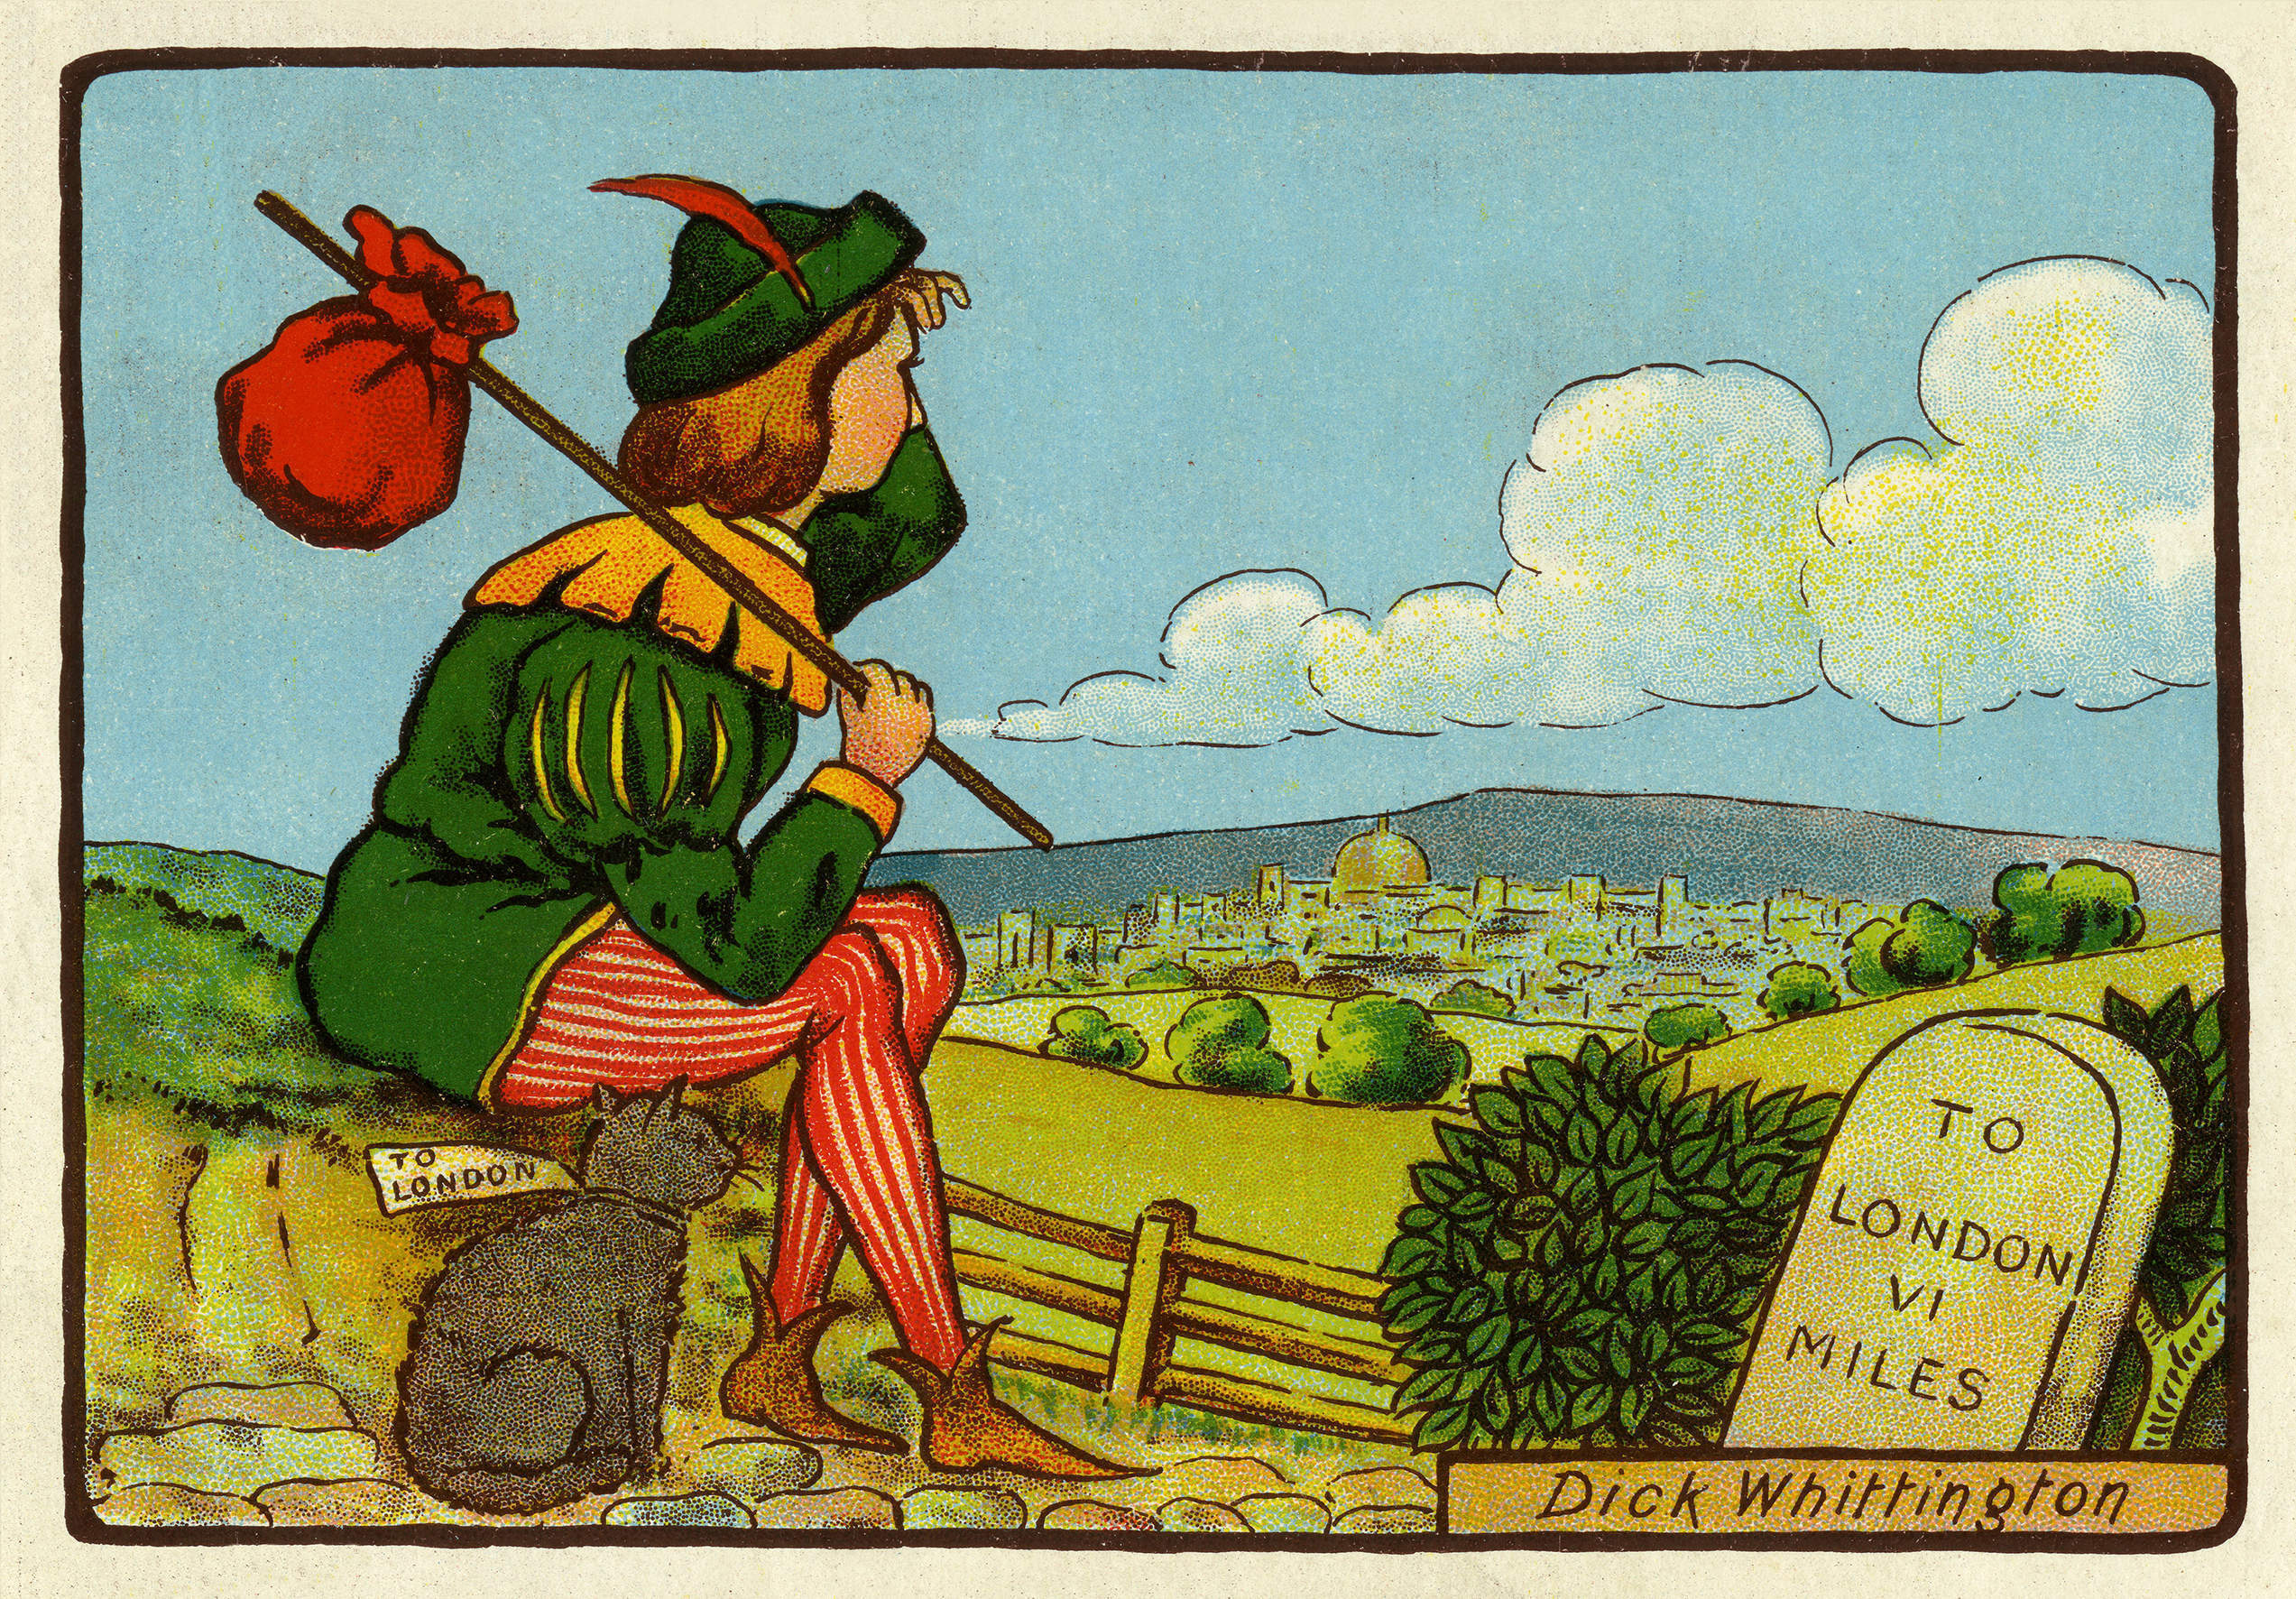 In search of the real Dick Whittington